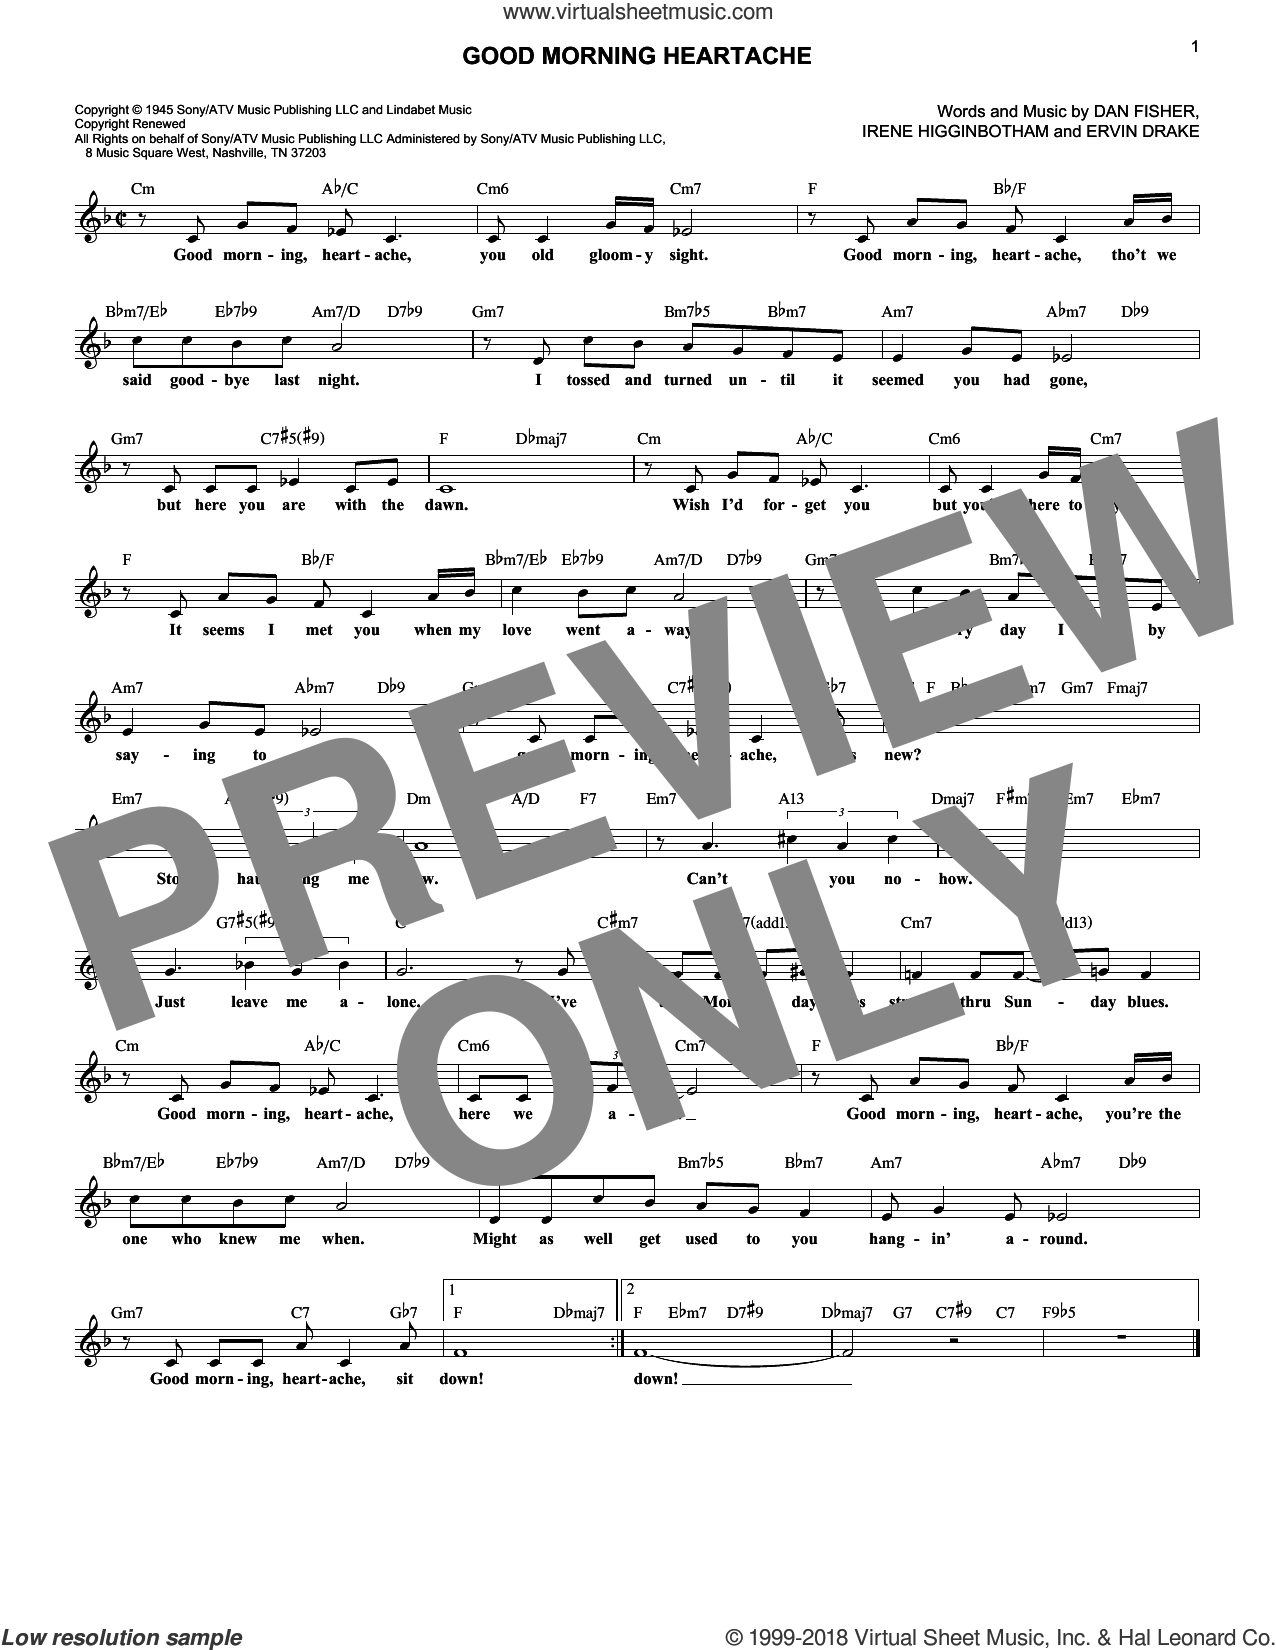 Good Morning Heartache sheet music for voice and other instruments (fake book) by Billie Holiday, Diana Ross, Dan Fisher, Ervin Drake and Irene Higginbotham, intermediate skill level